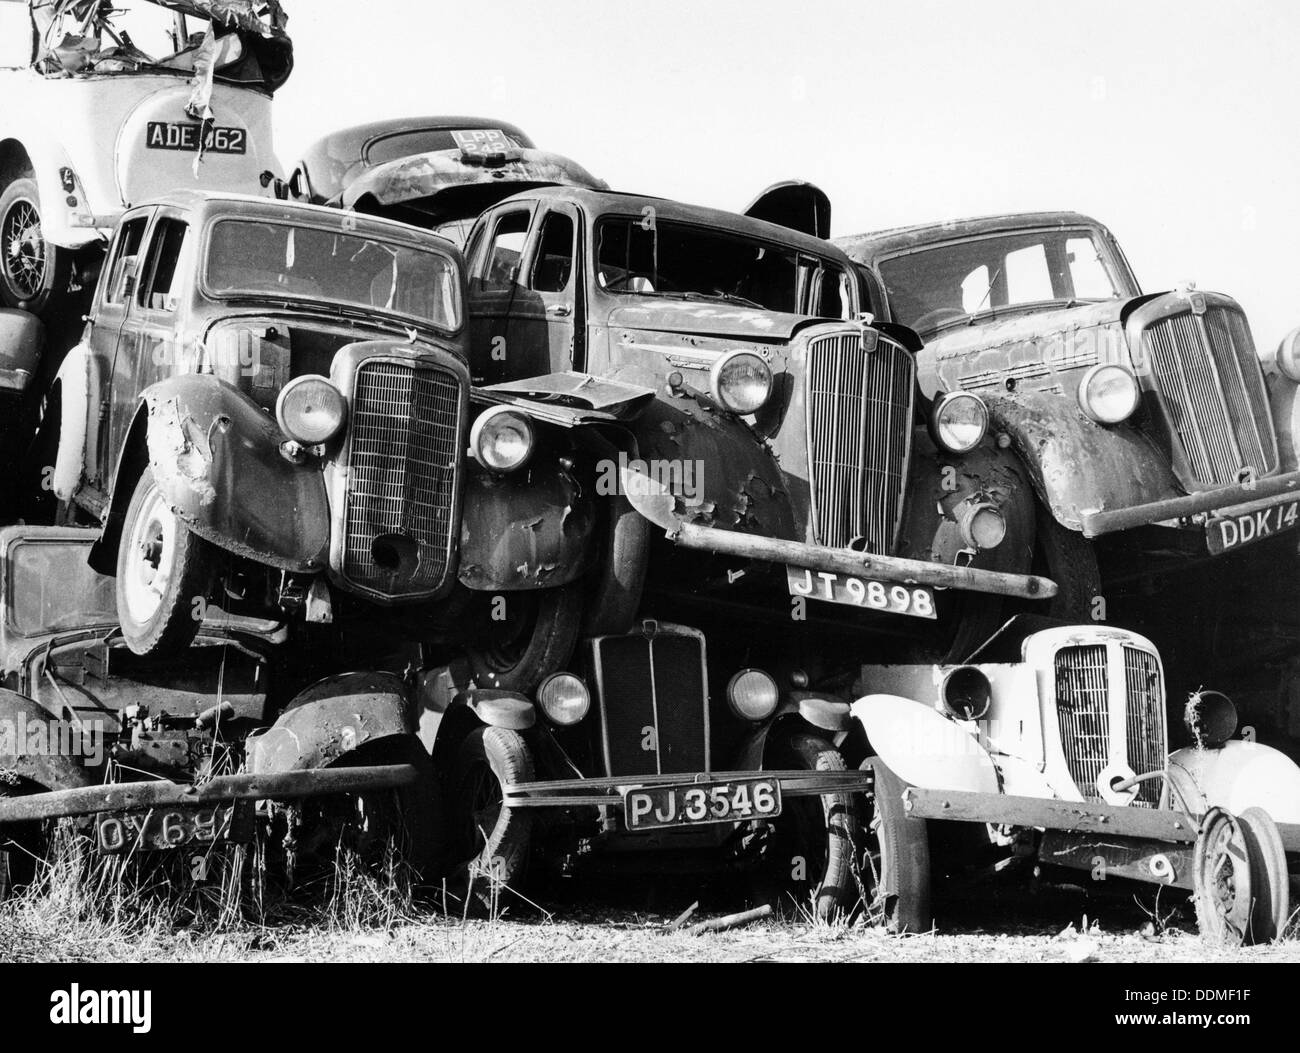 Old cars piled up in a scrapyard, Britain Stock Photo: 60072475 - Alamy